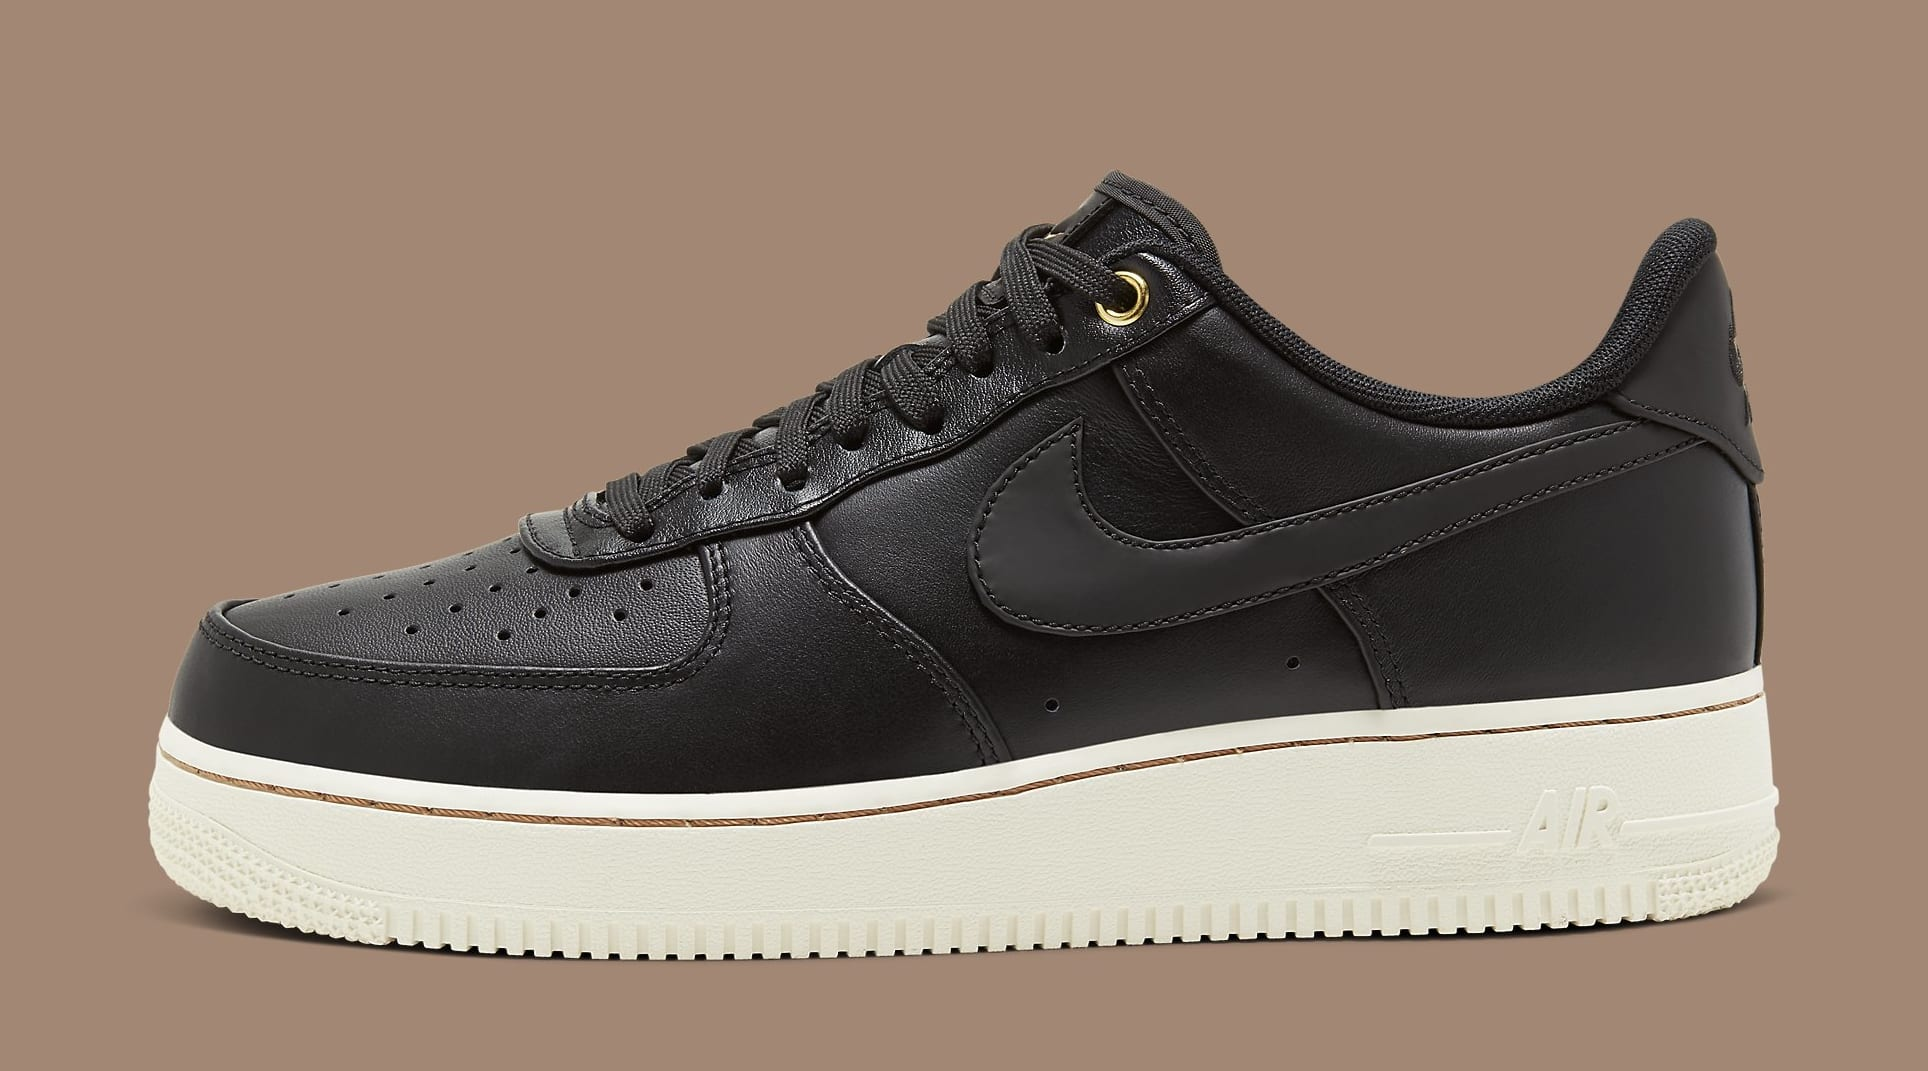 nike-air-force-1-low-black-pack-cu6675-001-lateral